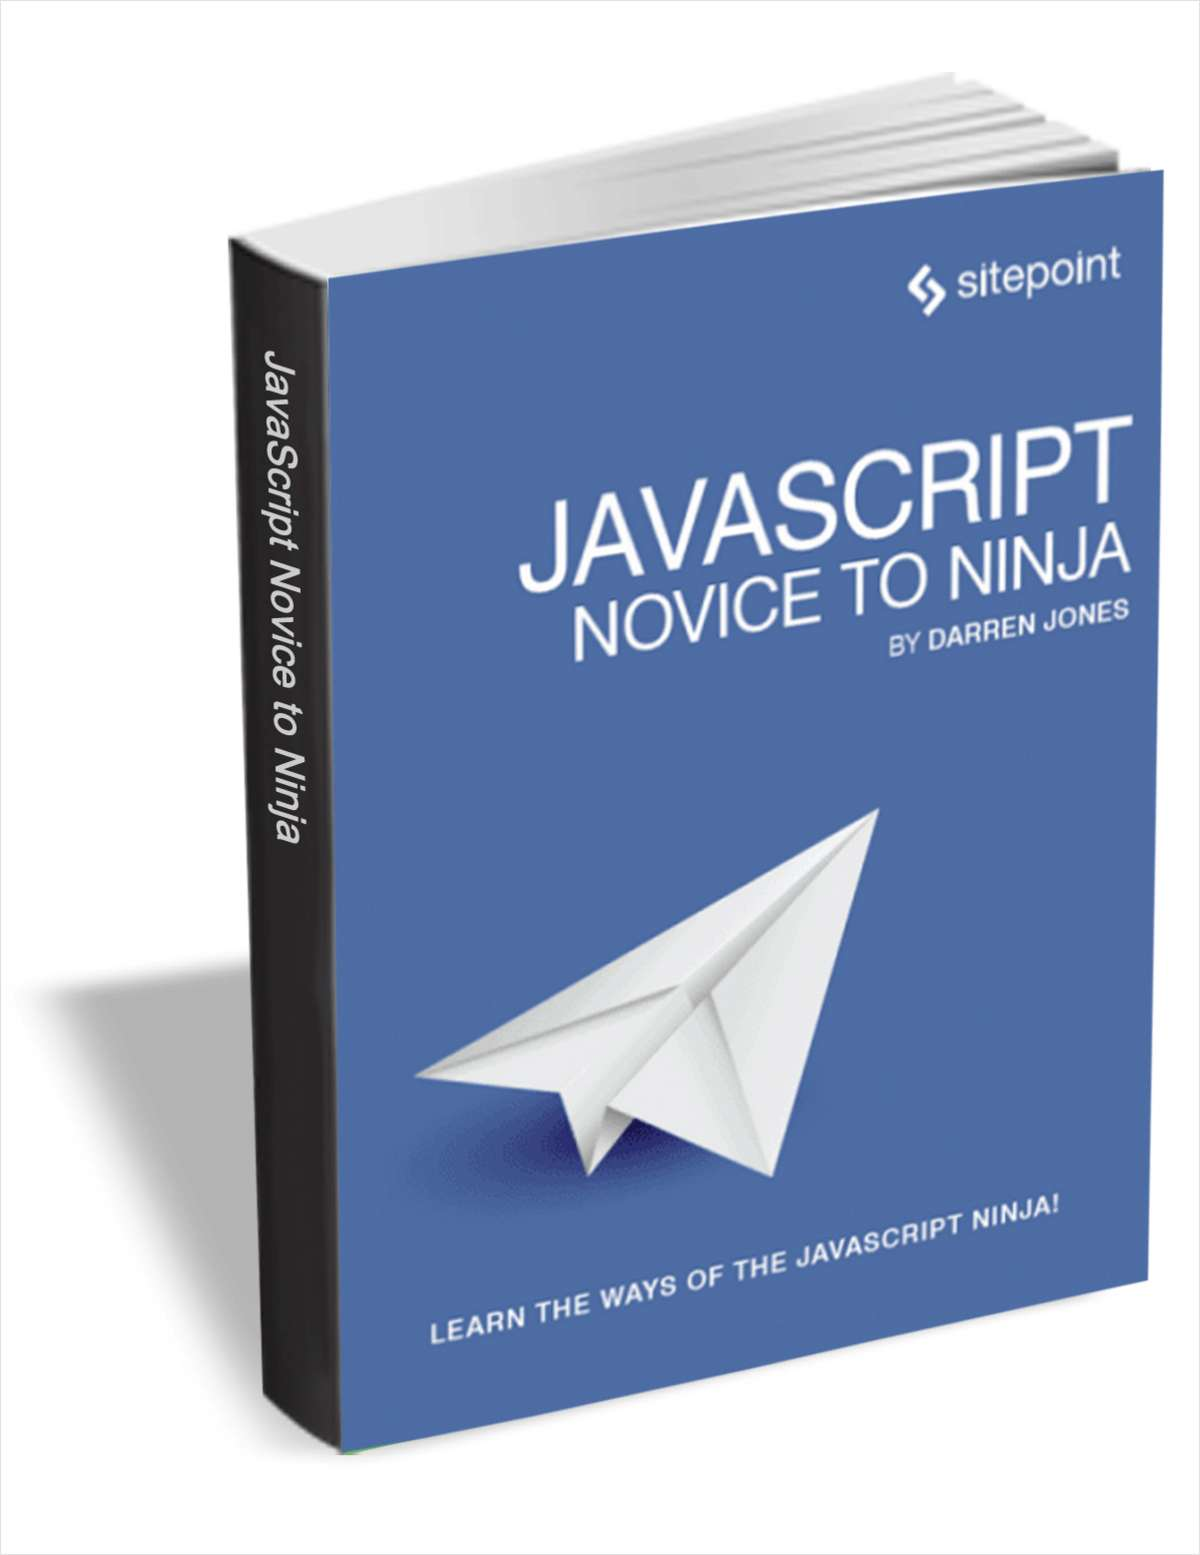 JavaScript: Novice to Ninja (FREE!) Regularly $30